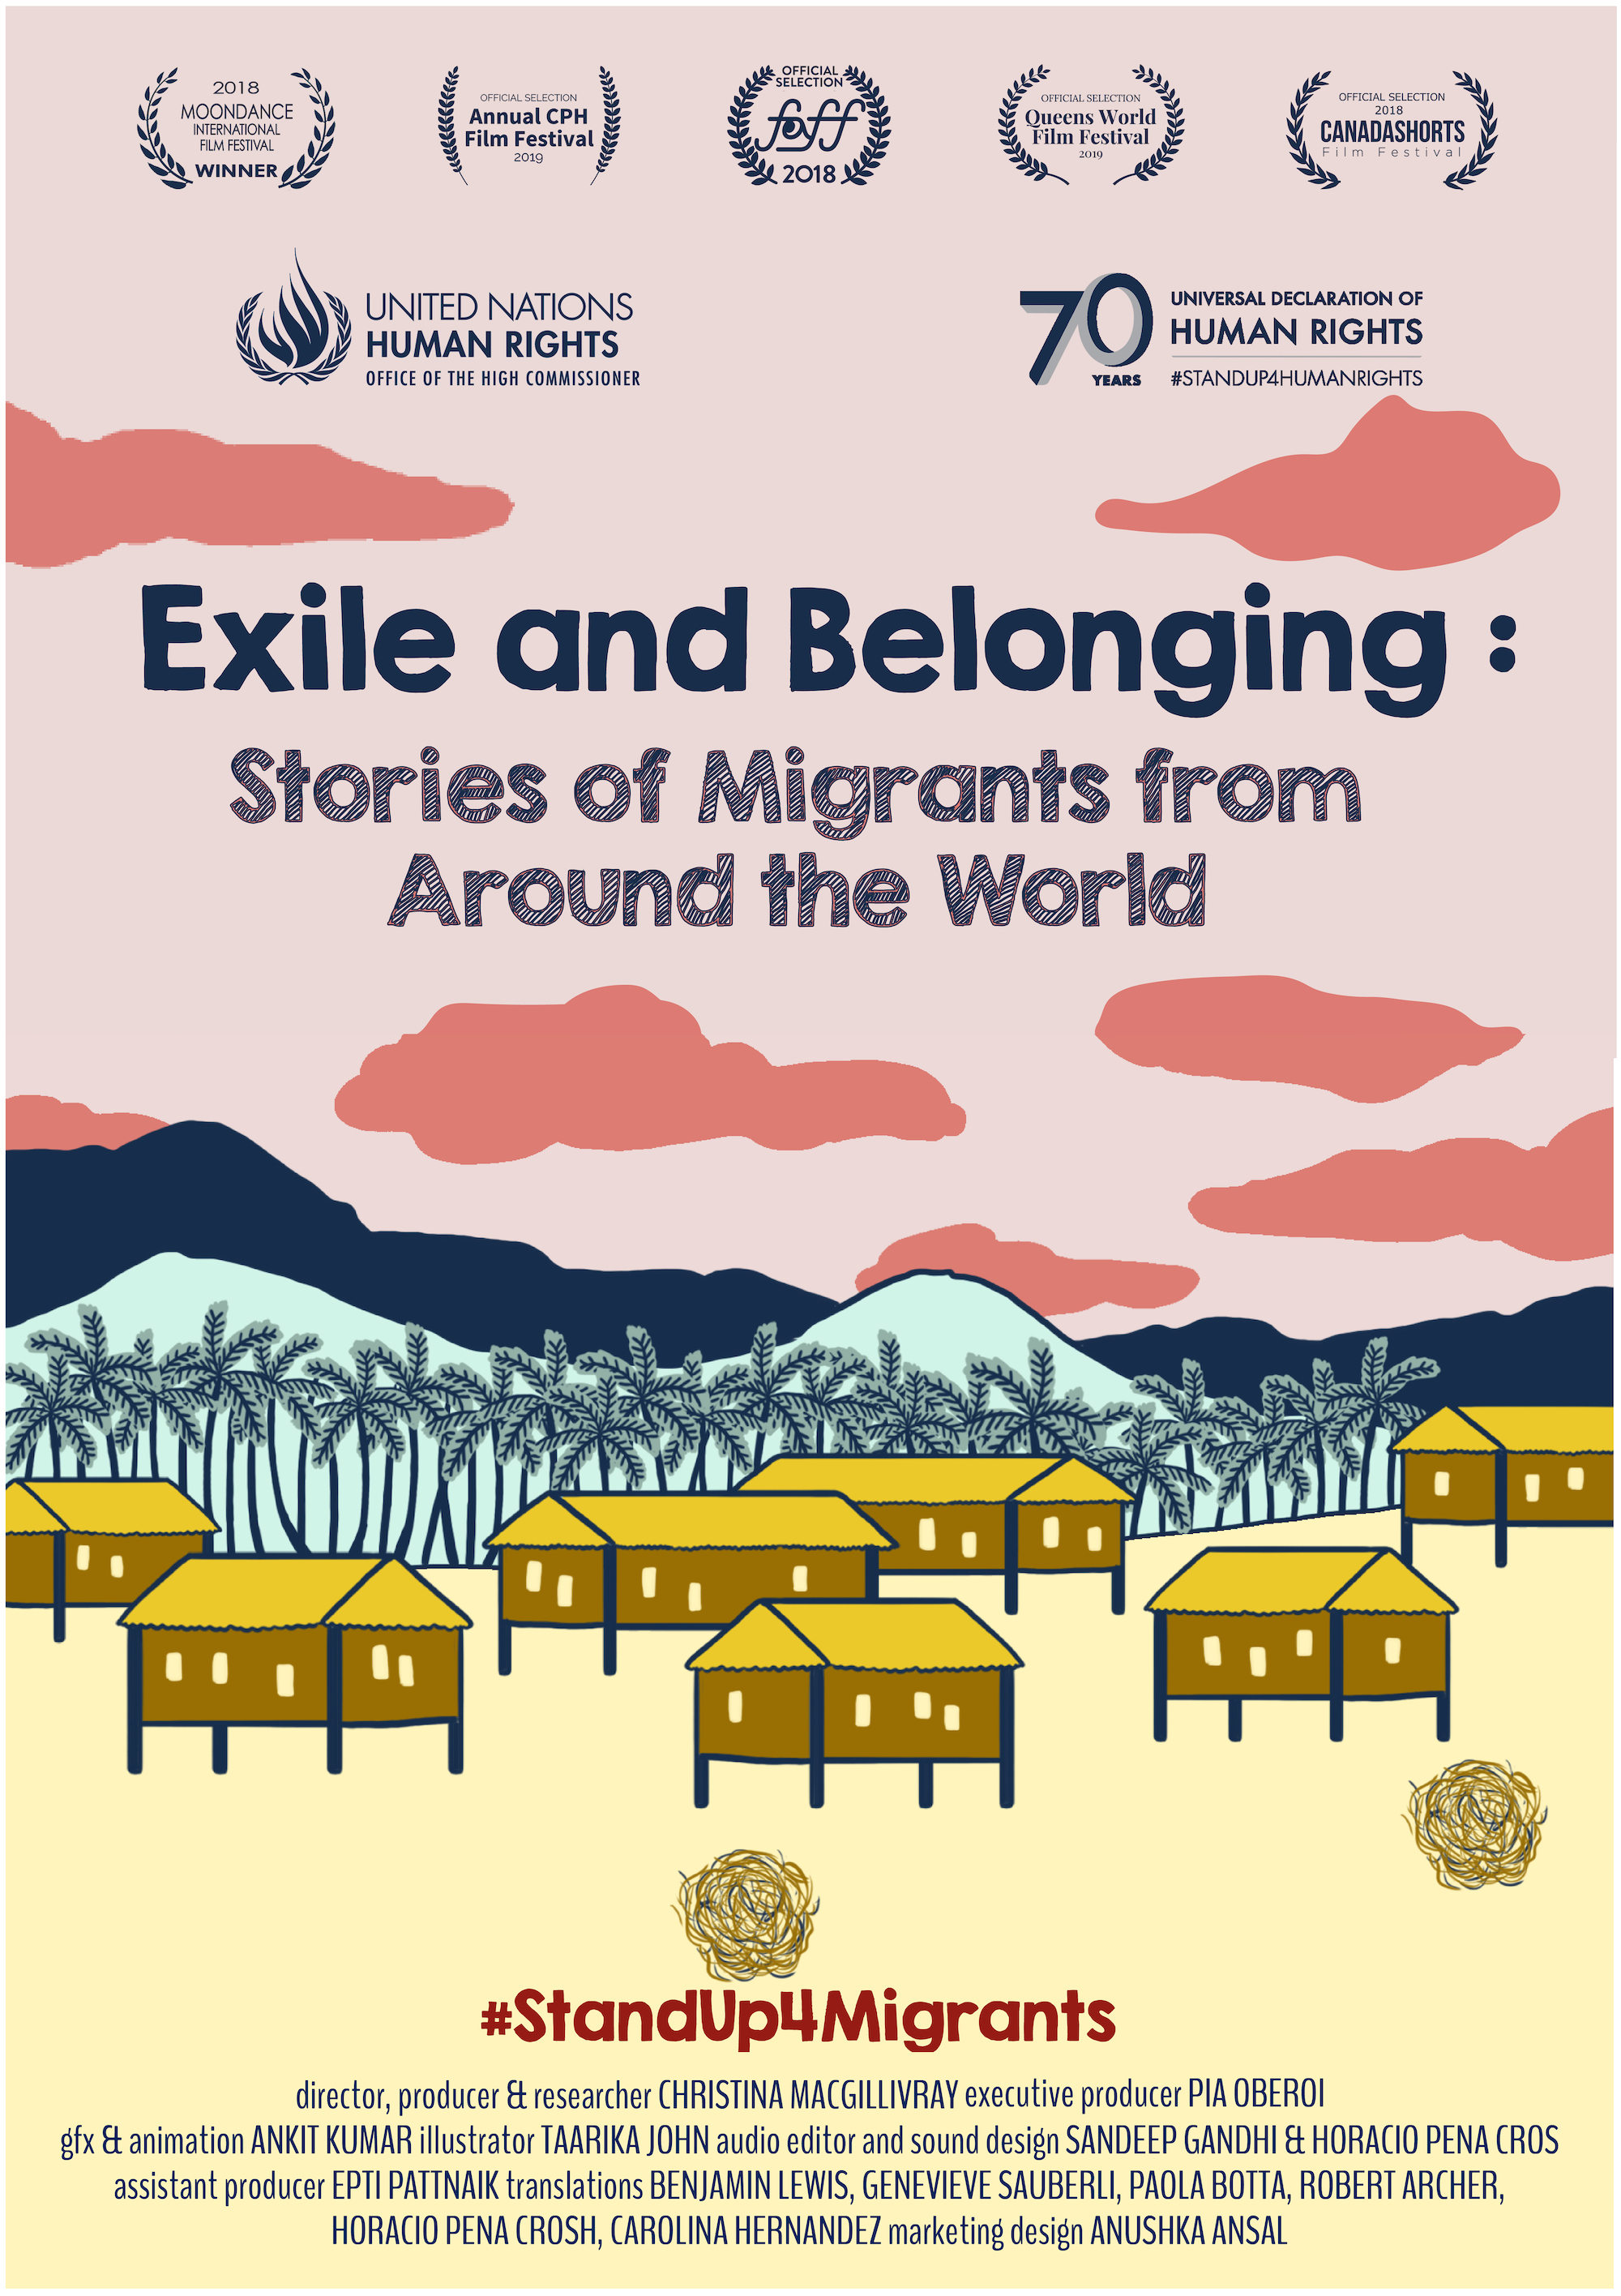 Exile and Belonging poster